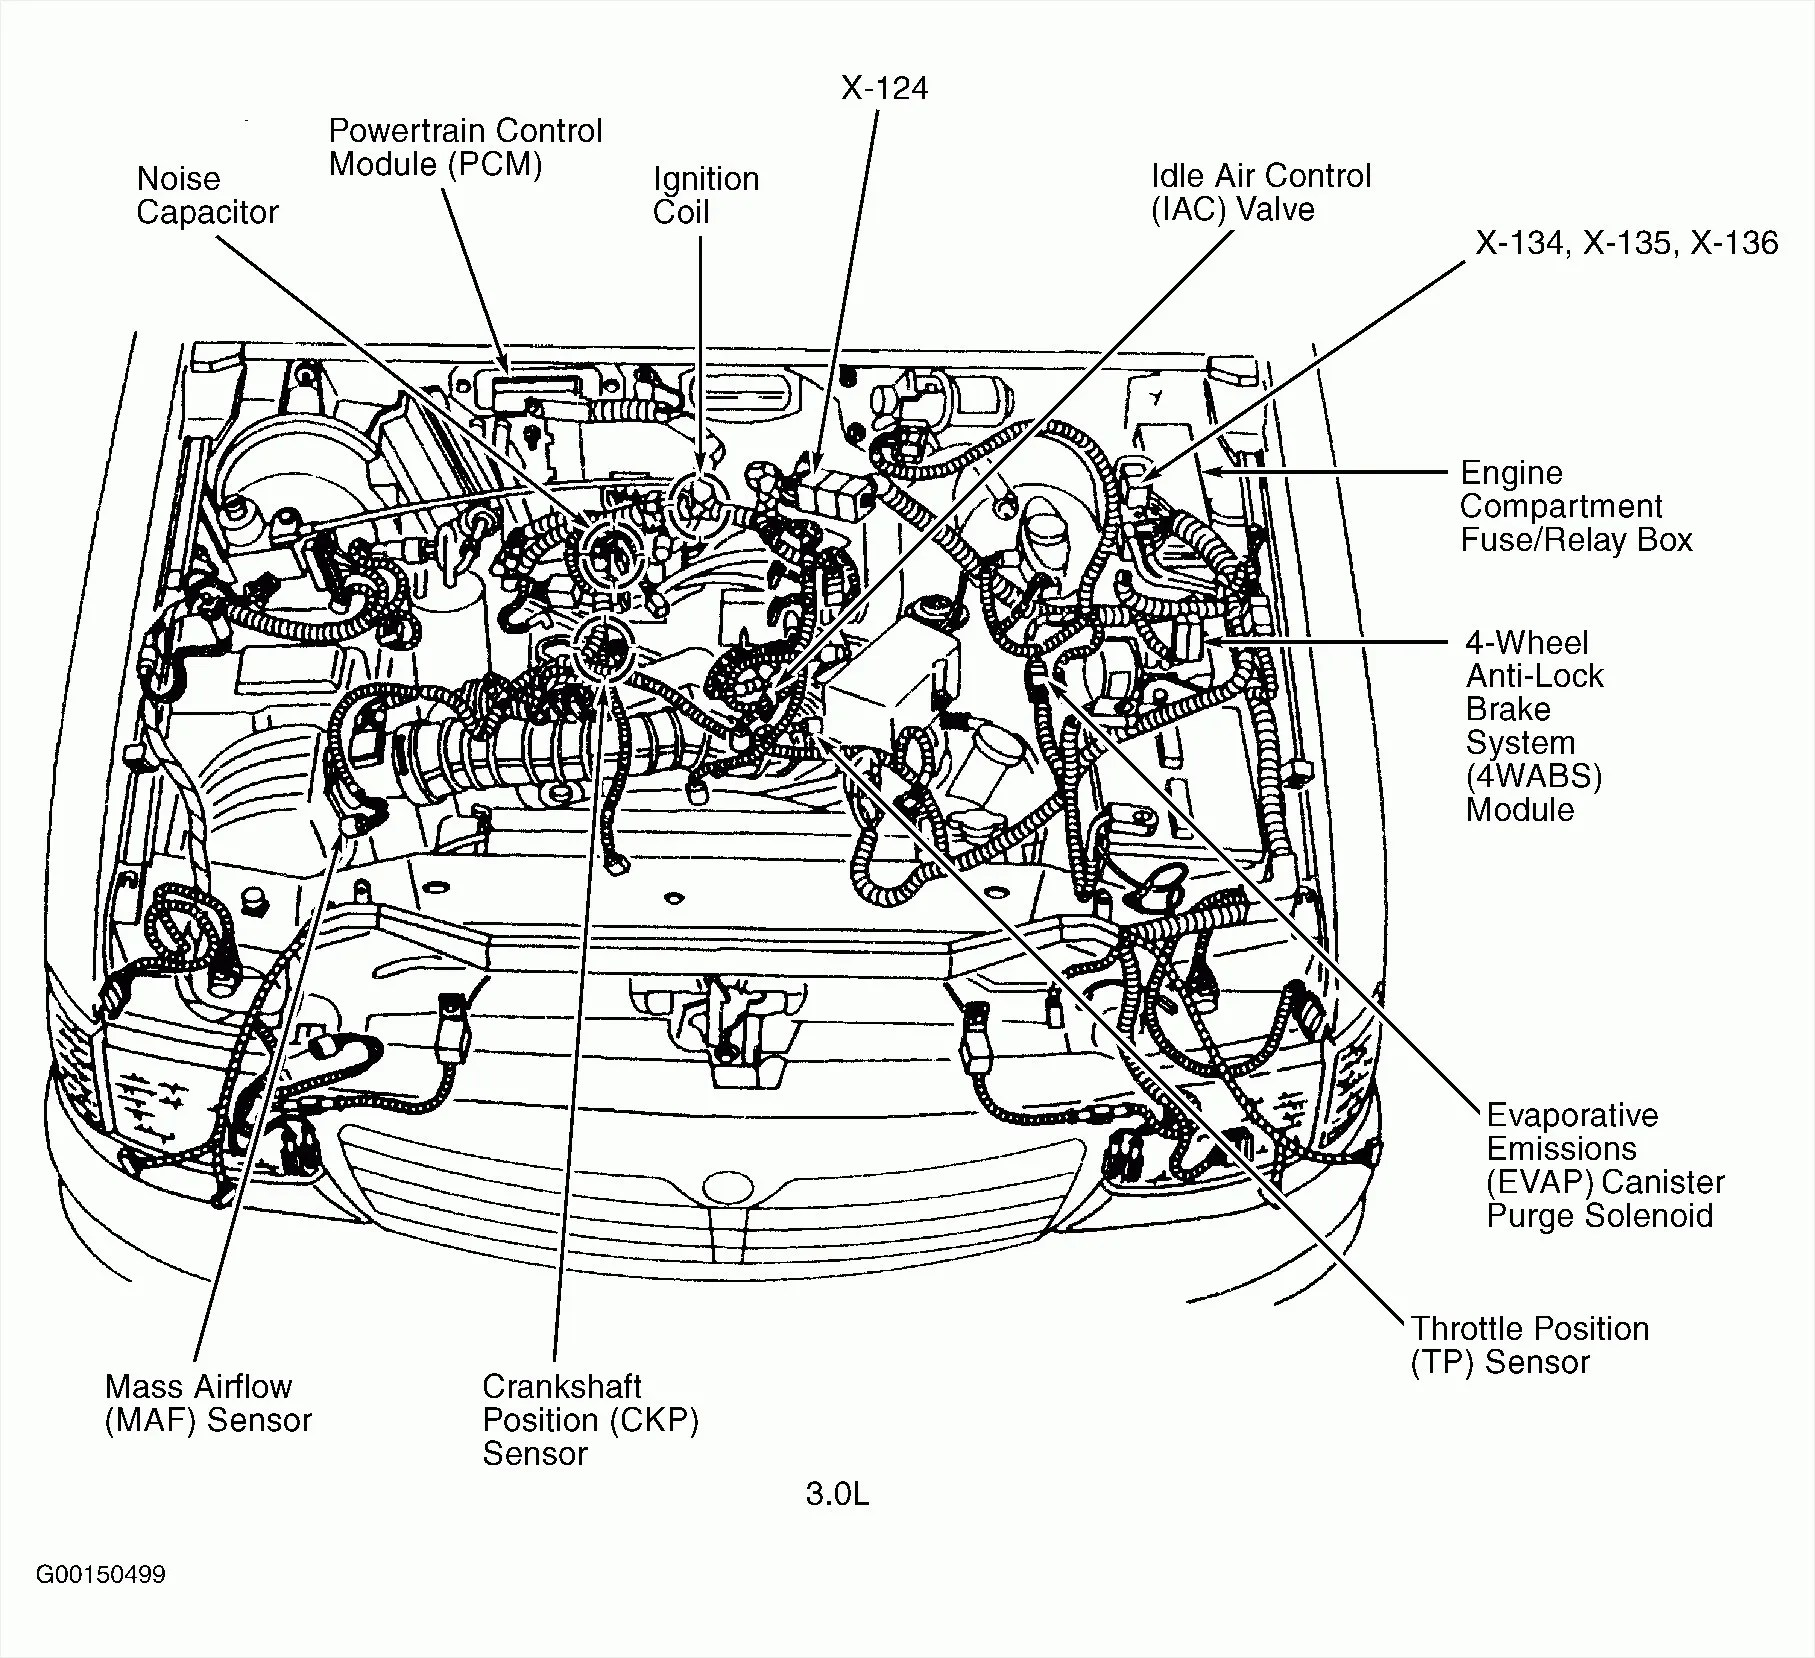 hight resolution of 1997 mazda mpv engine diagram reveolution of wiring diagram u2022 rh jivehype co 2003 mazda mpv